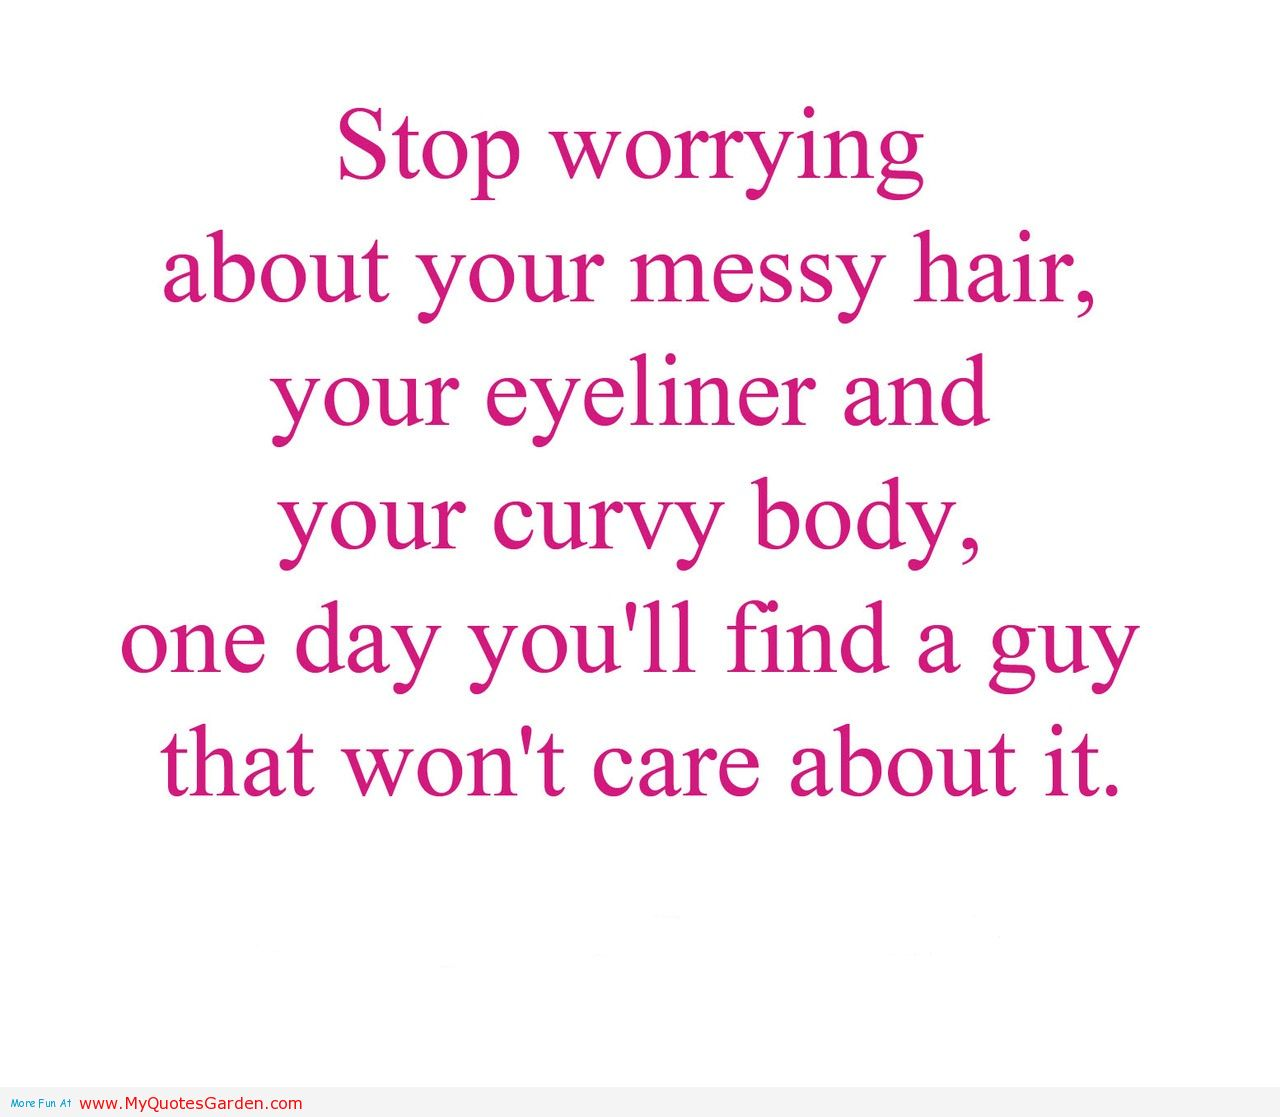 Stop Worrying About Your Messy Hair Your Eyeliner And Your Curvy